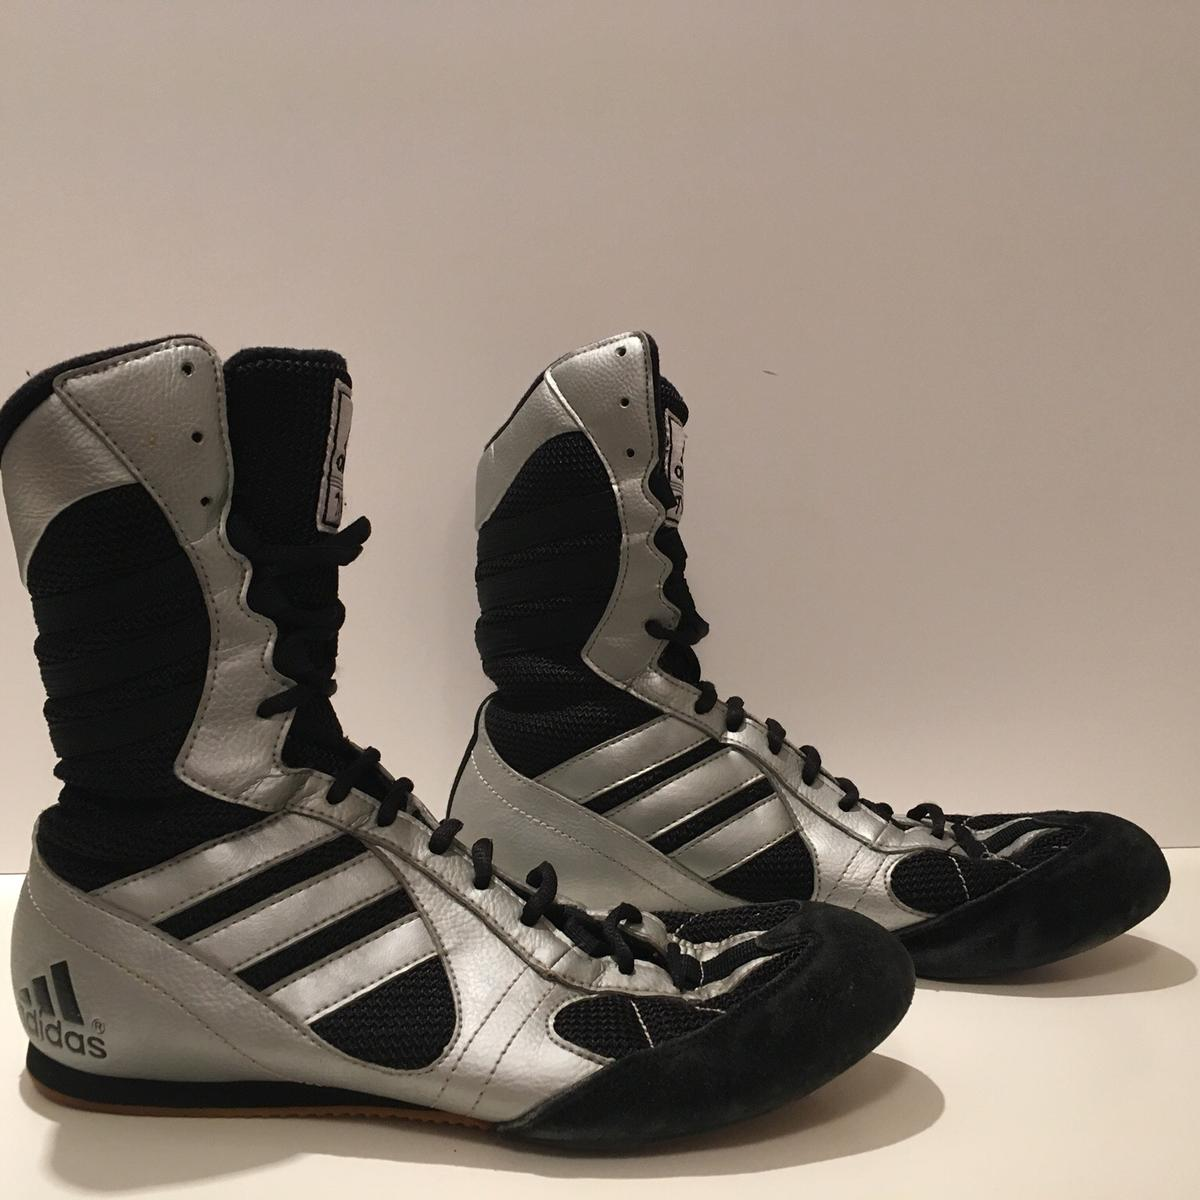 Adidas Tygun box boots, size 6 12 in SW4 Lambeth for £18.00